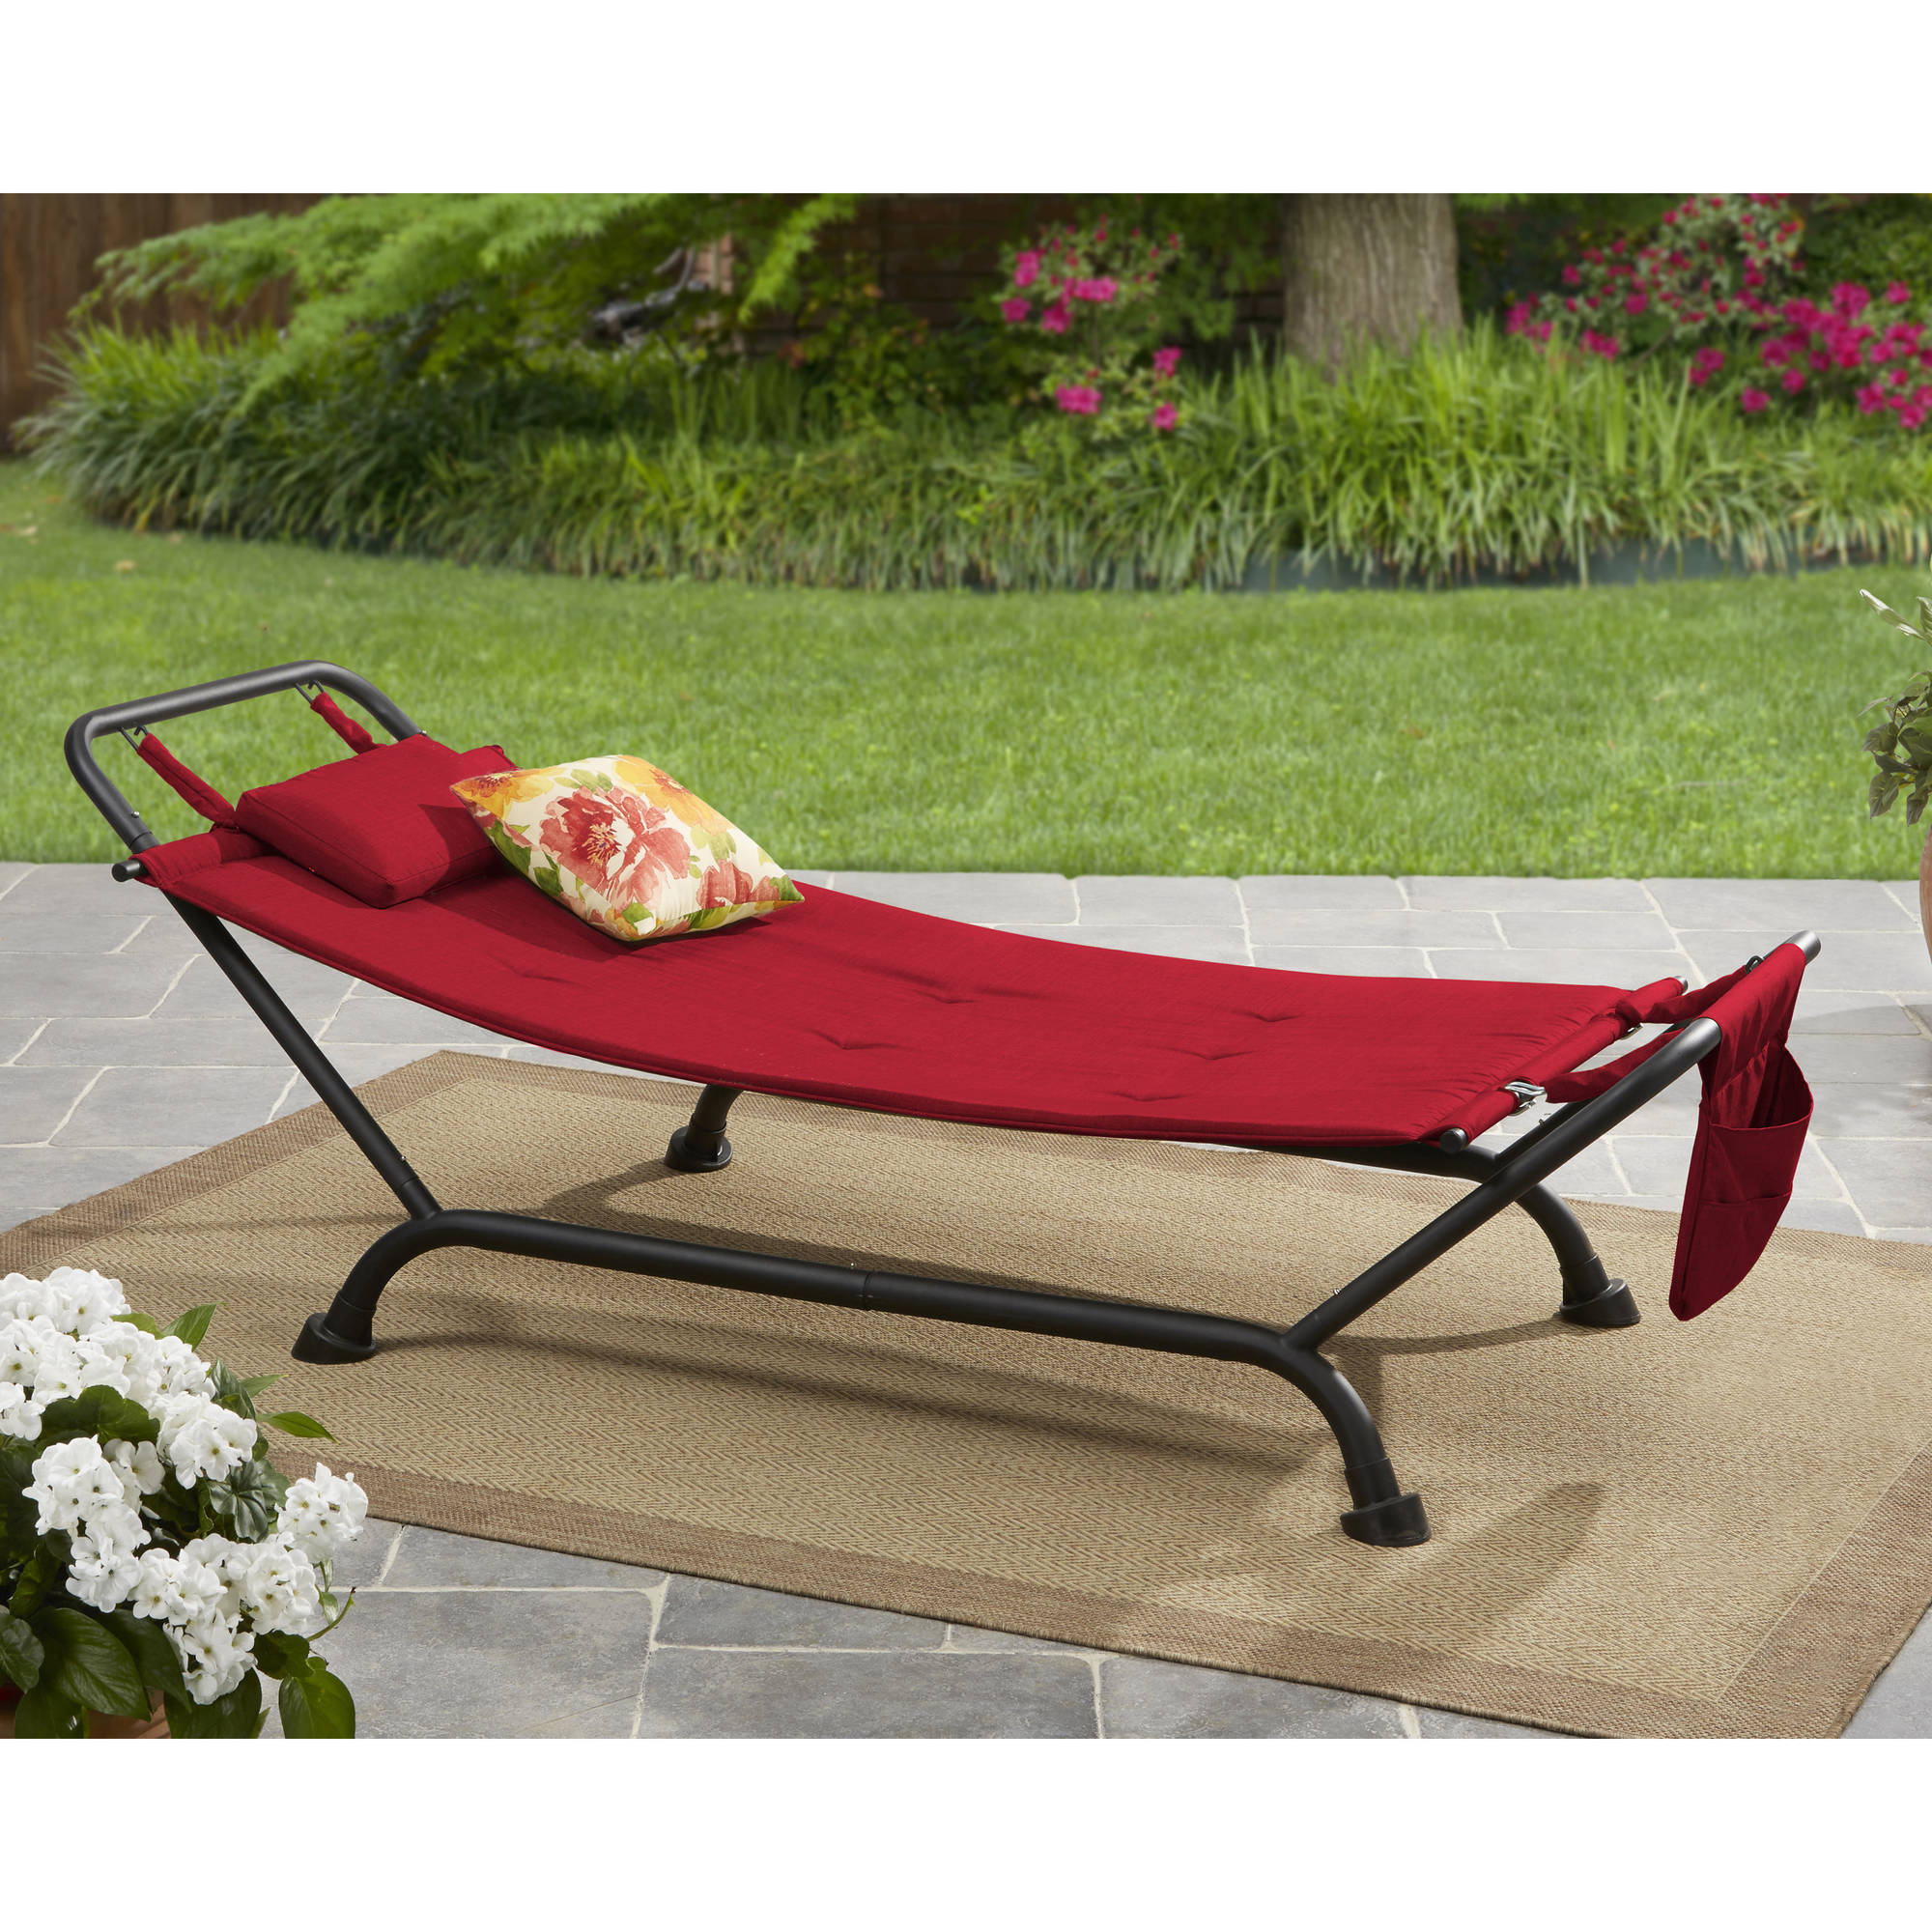 Mainstays Belden Park Hammock with Stand